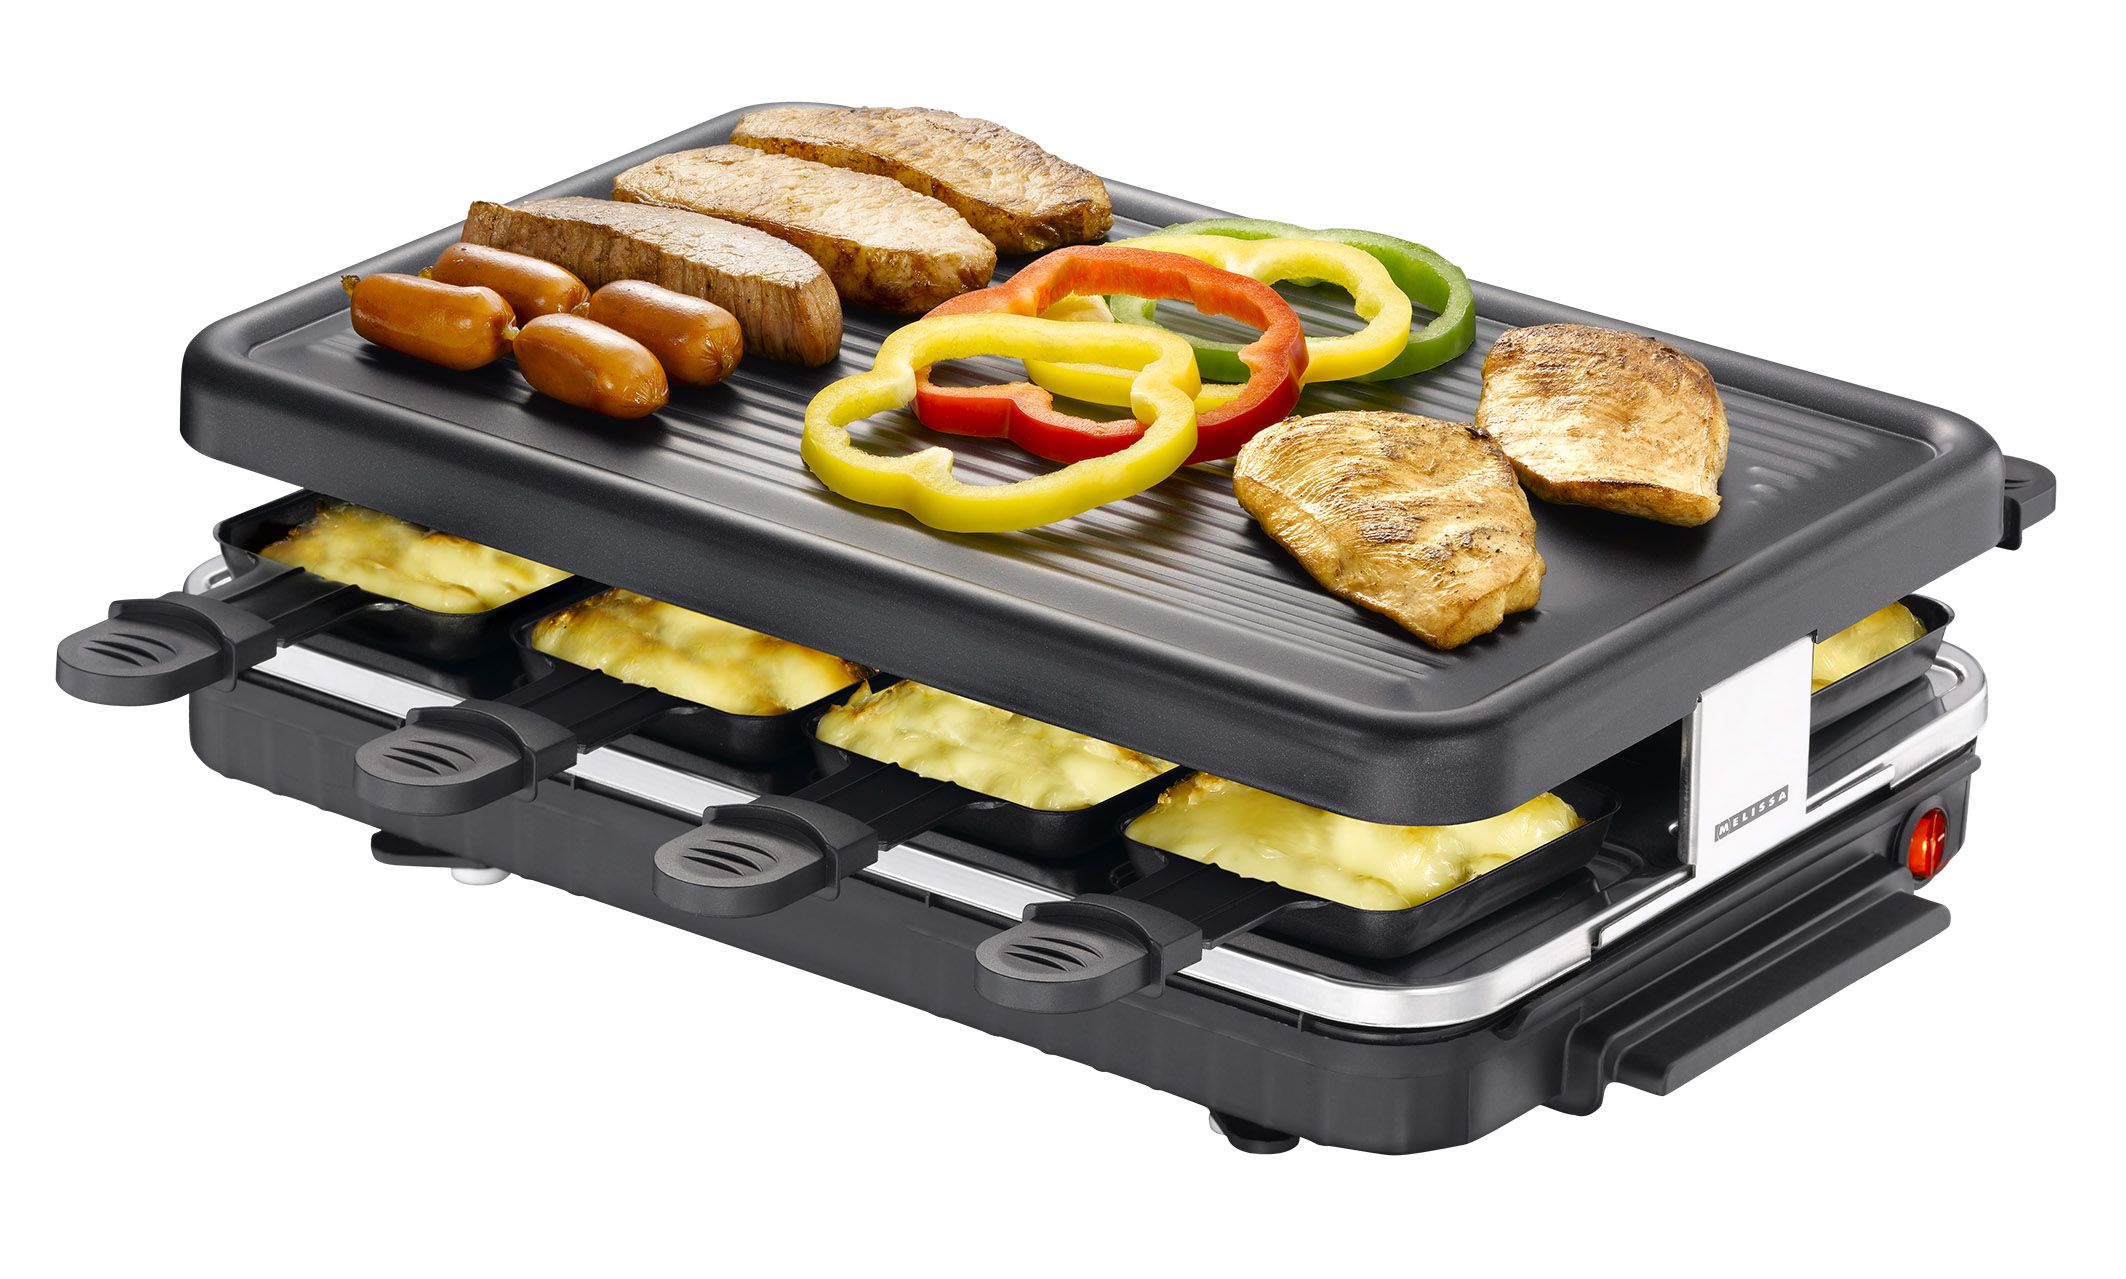 8 p raclette grill antihaftbeschichtet raclettegrill raclettgrill elektrogrill ebay. Black Bedroom Furniture Sets. Home Design Ideas